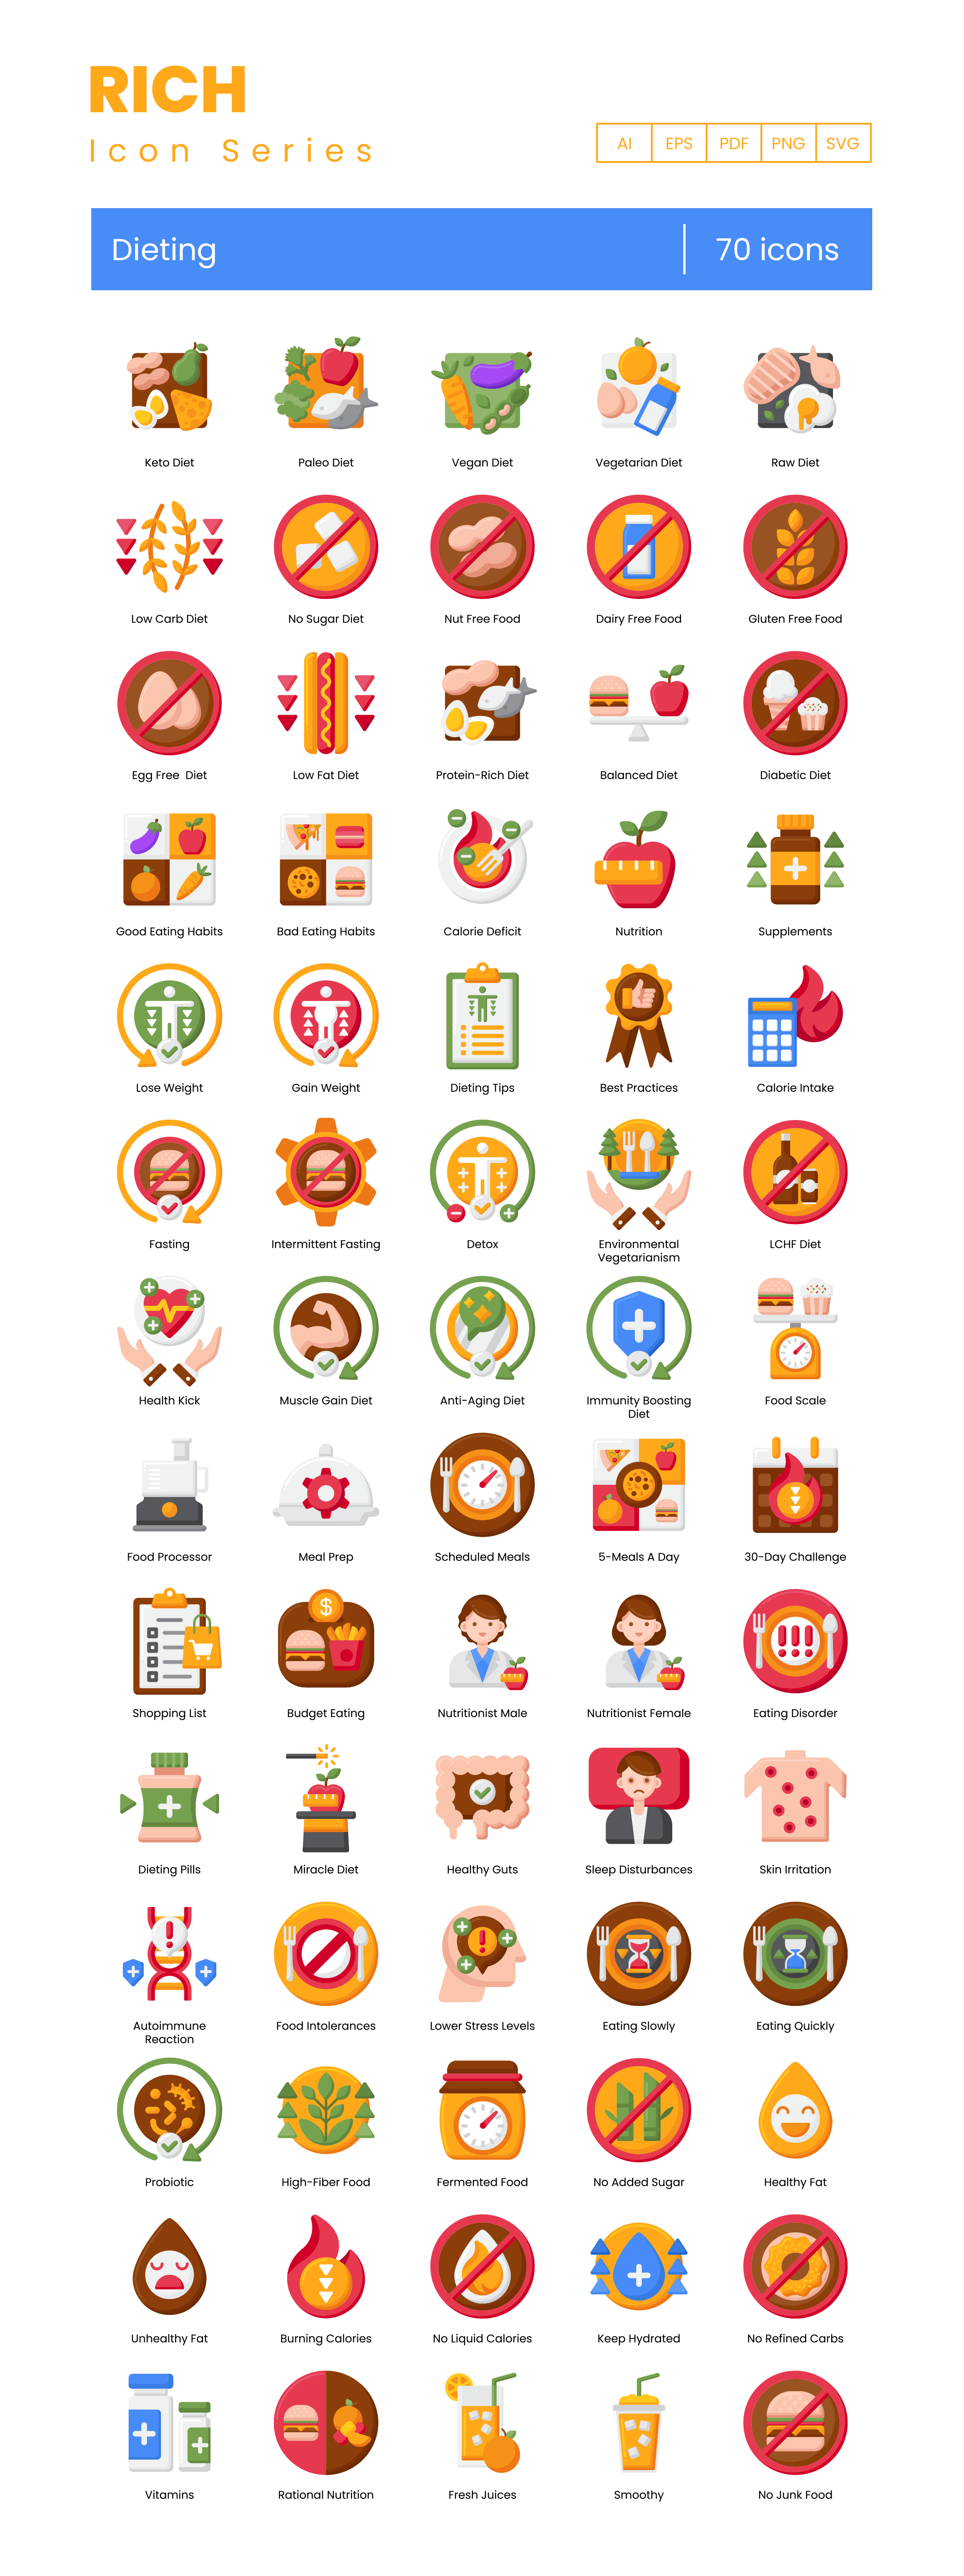 Dieting Vector Icons Preview Image